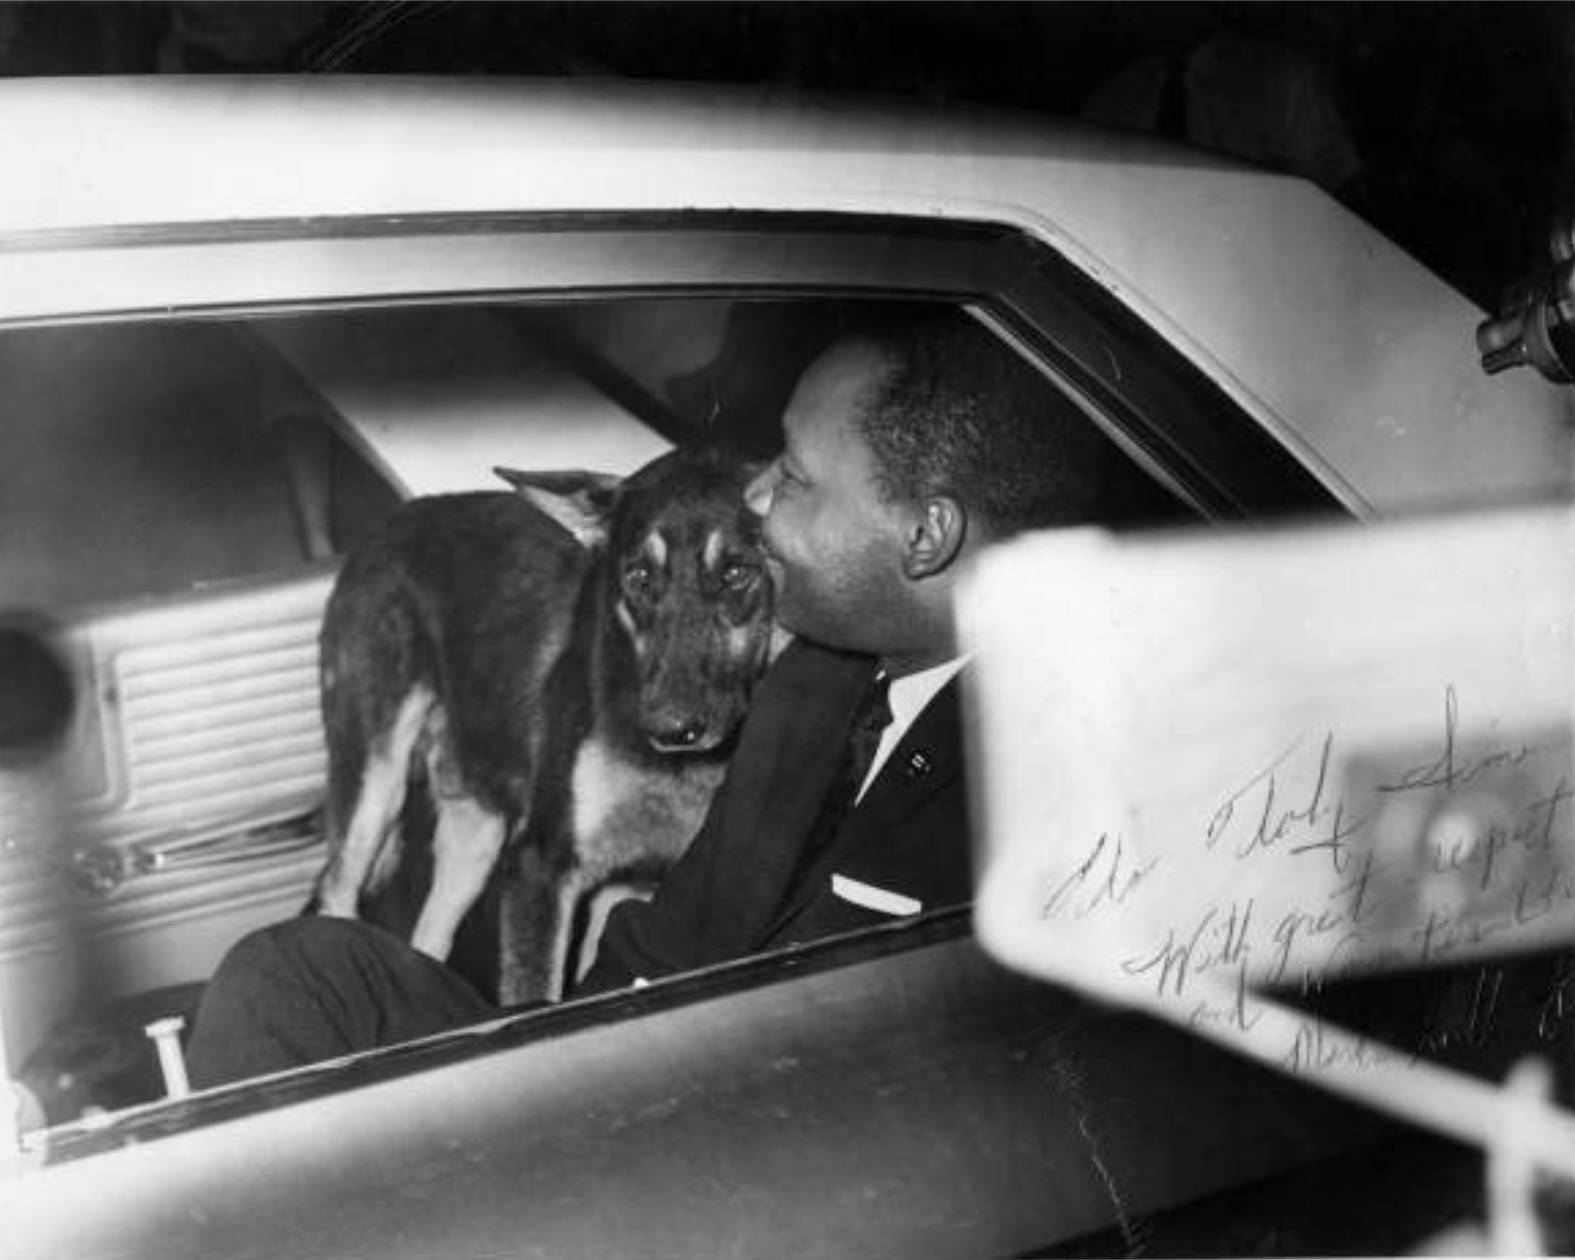 [STATE ARCHIVES OF FLORIDA] MLK IN POLICE CUSTODY 1964.png